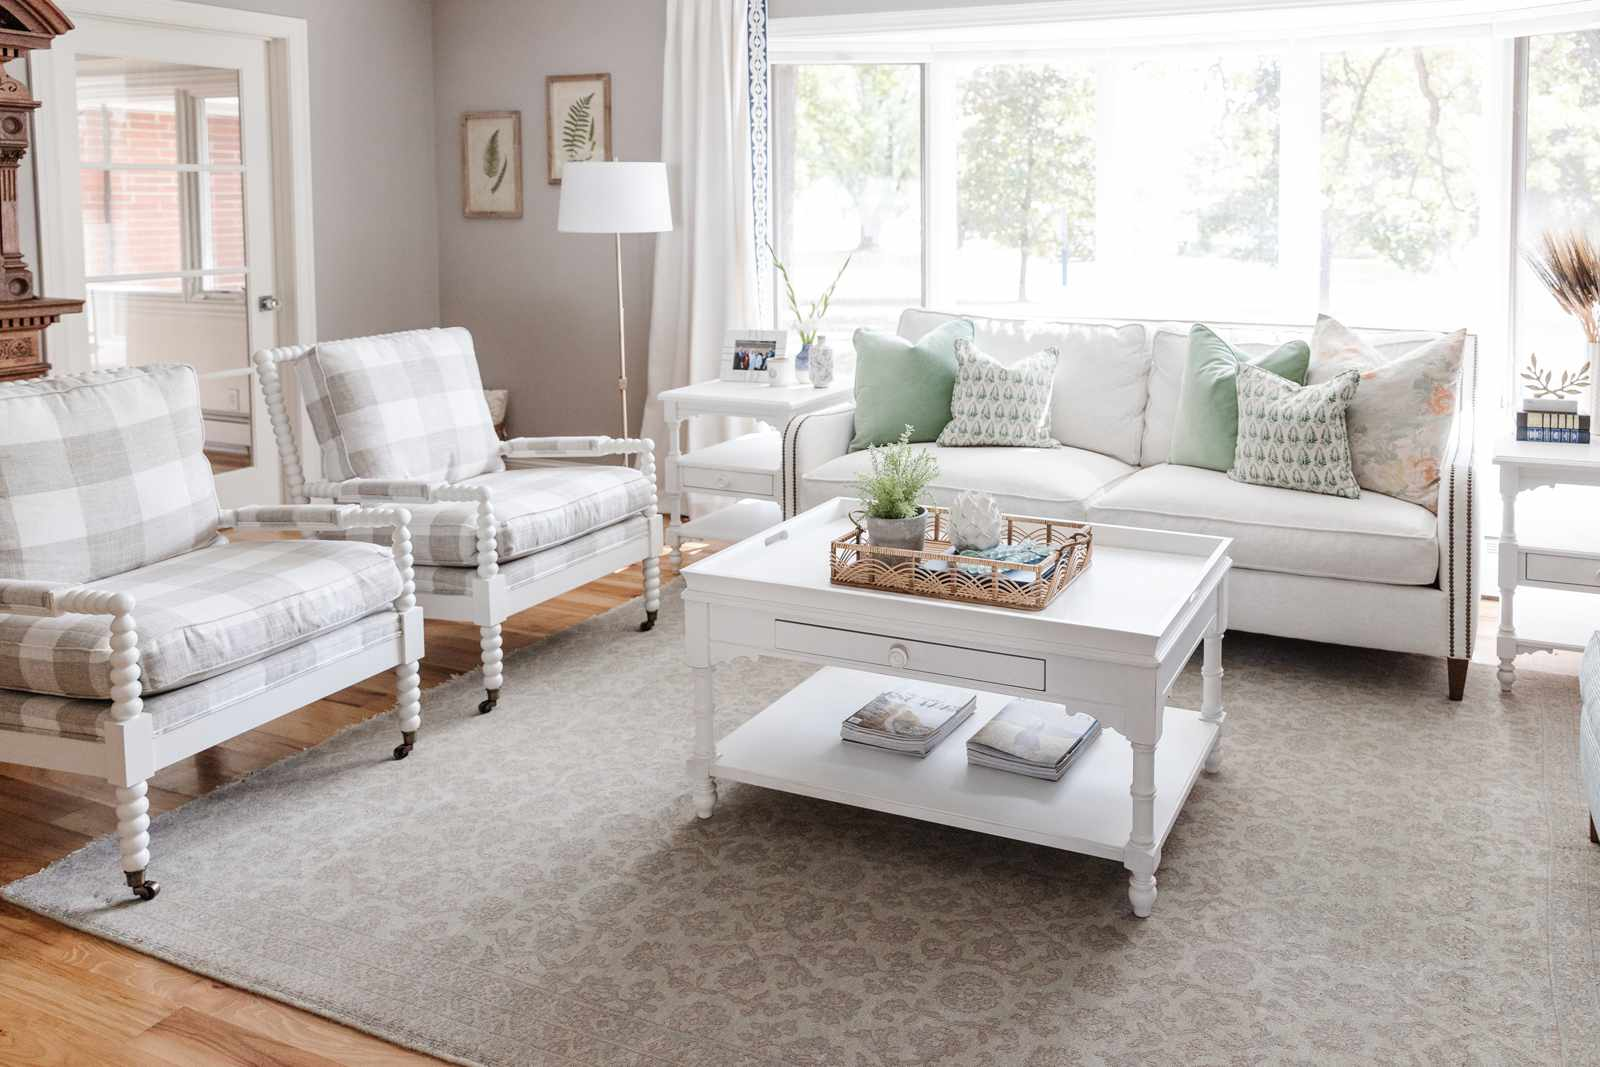 Accent chairs with Buffalo check patterned upholstery